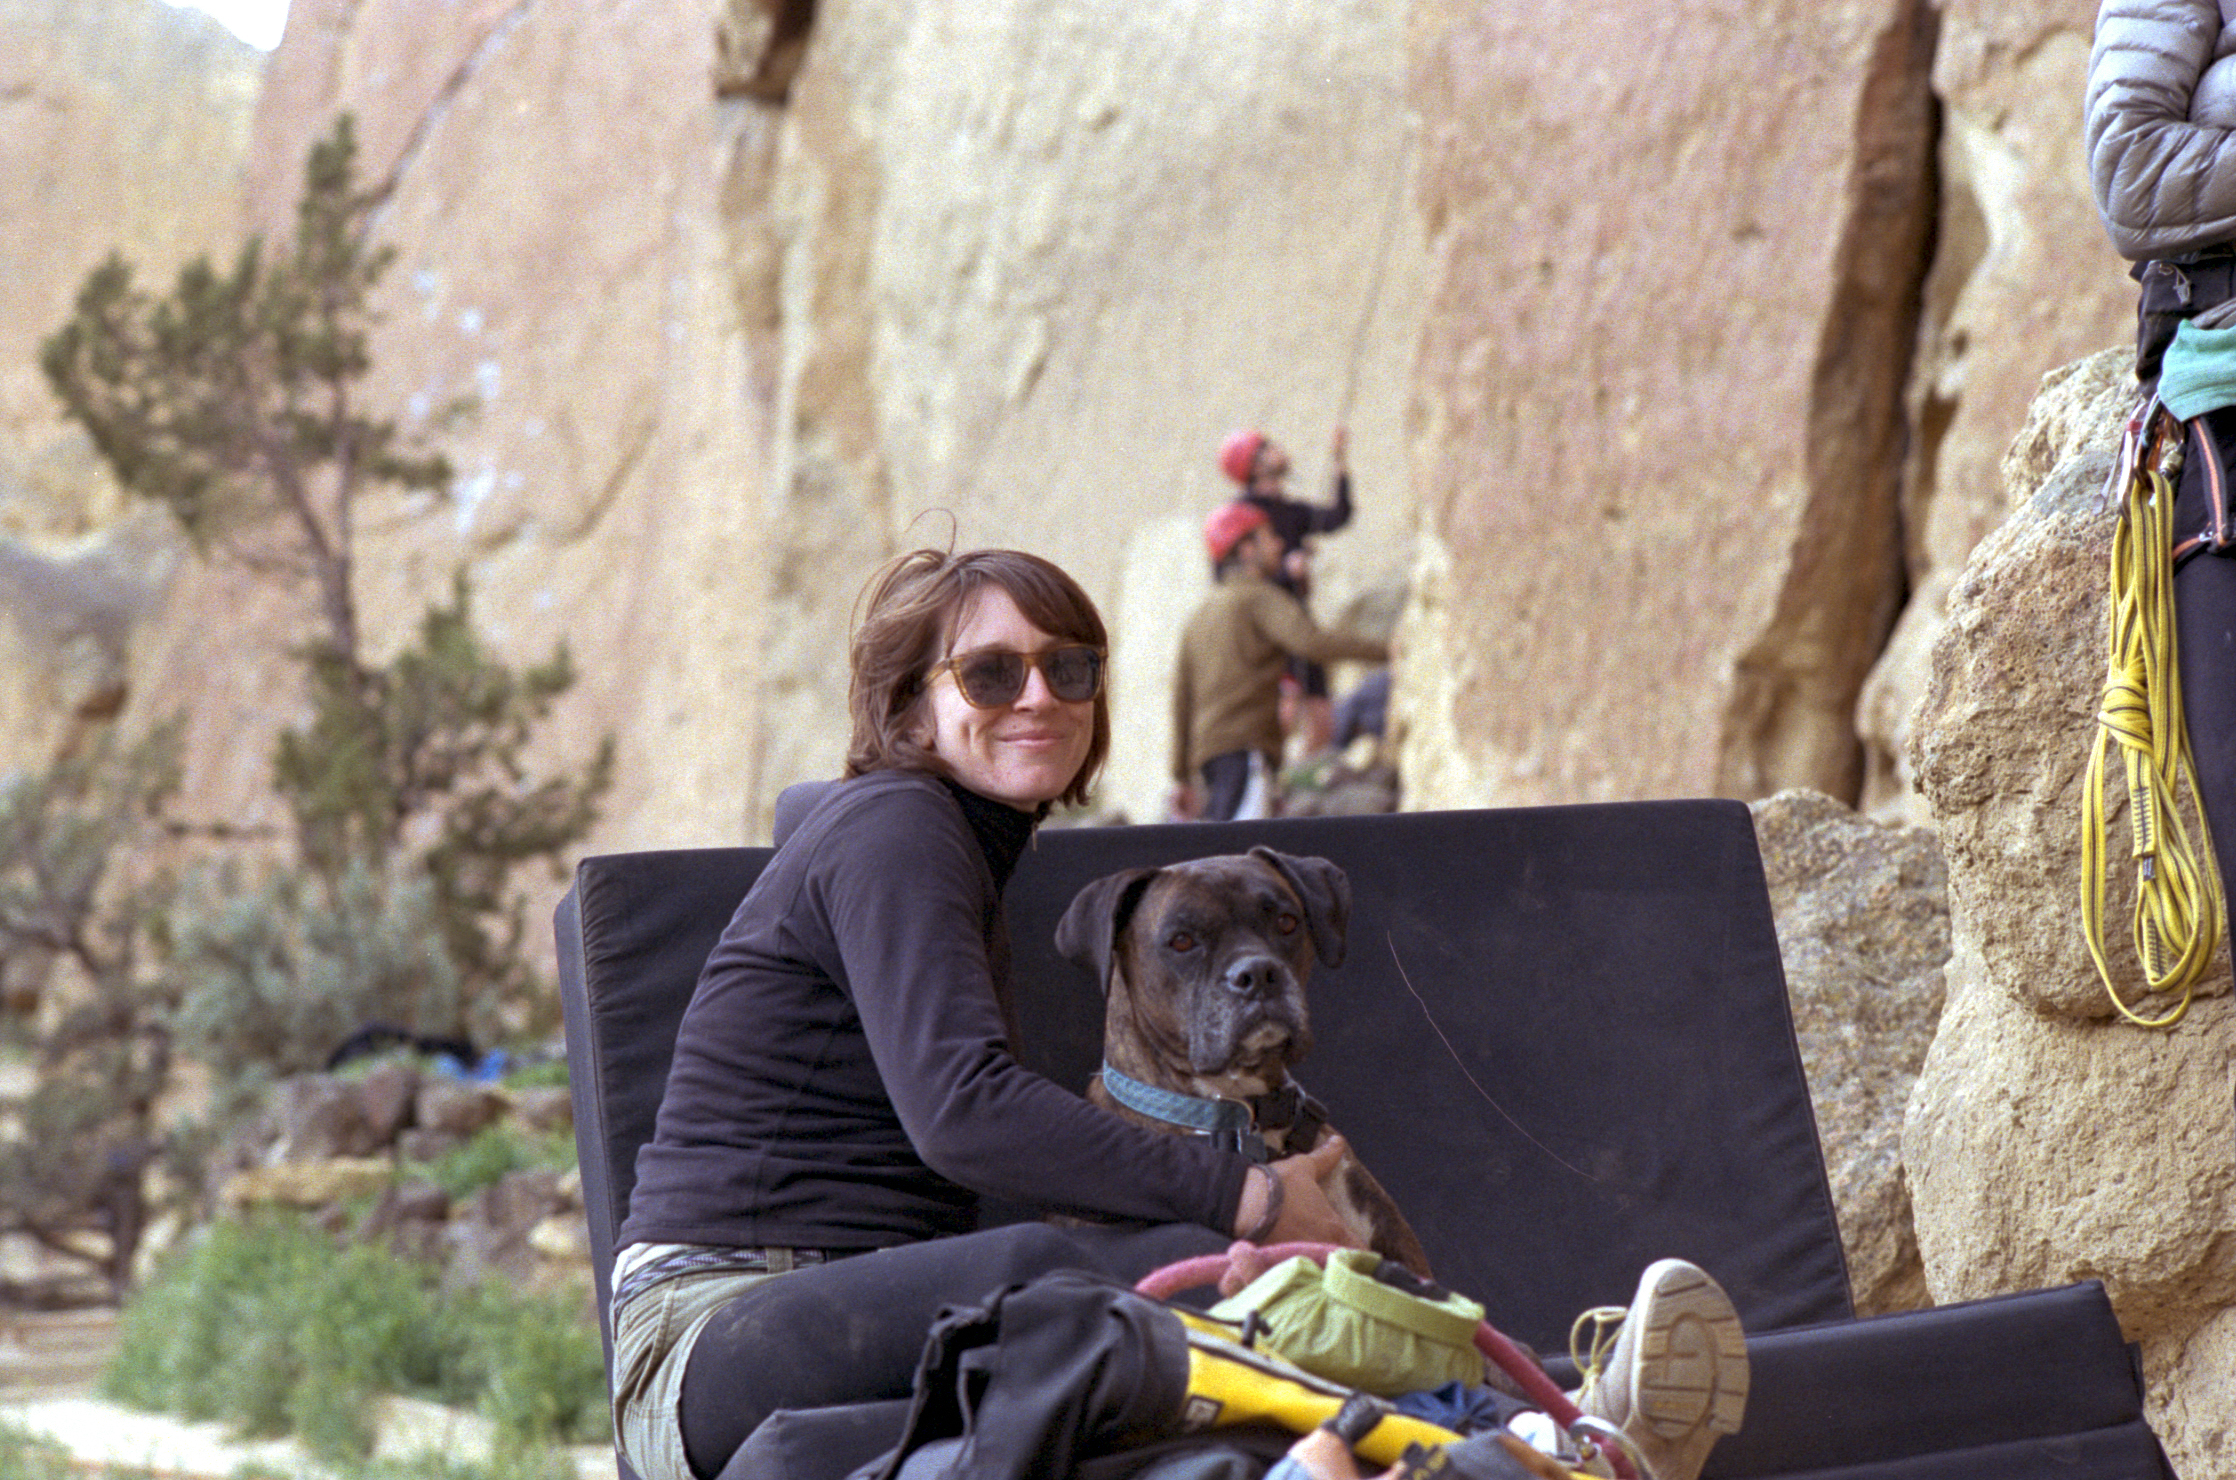 Leanne and Merlin cuddling at Smith Rock